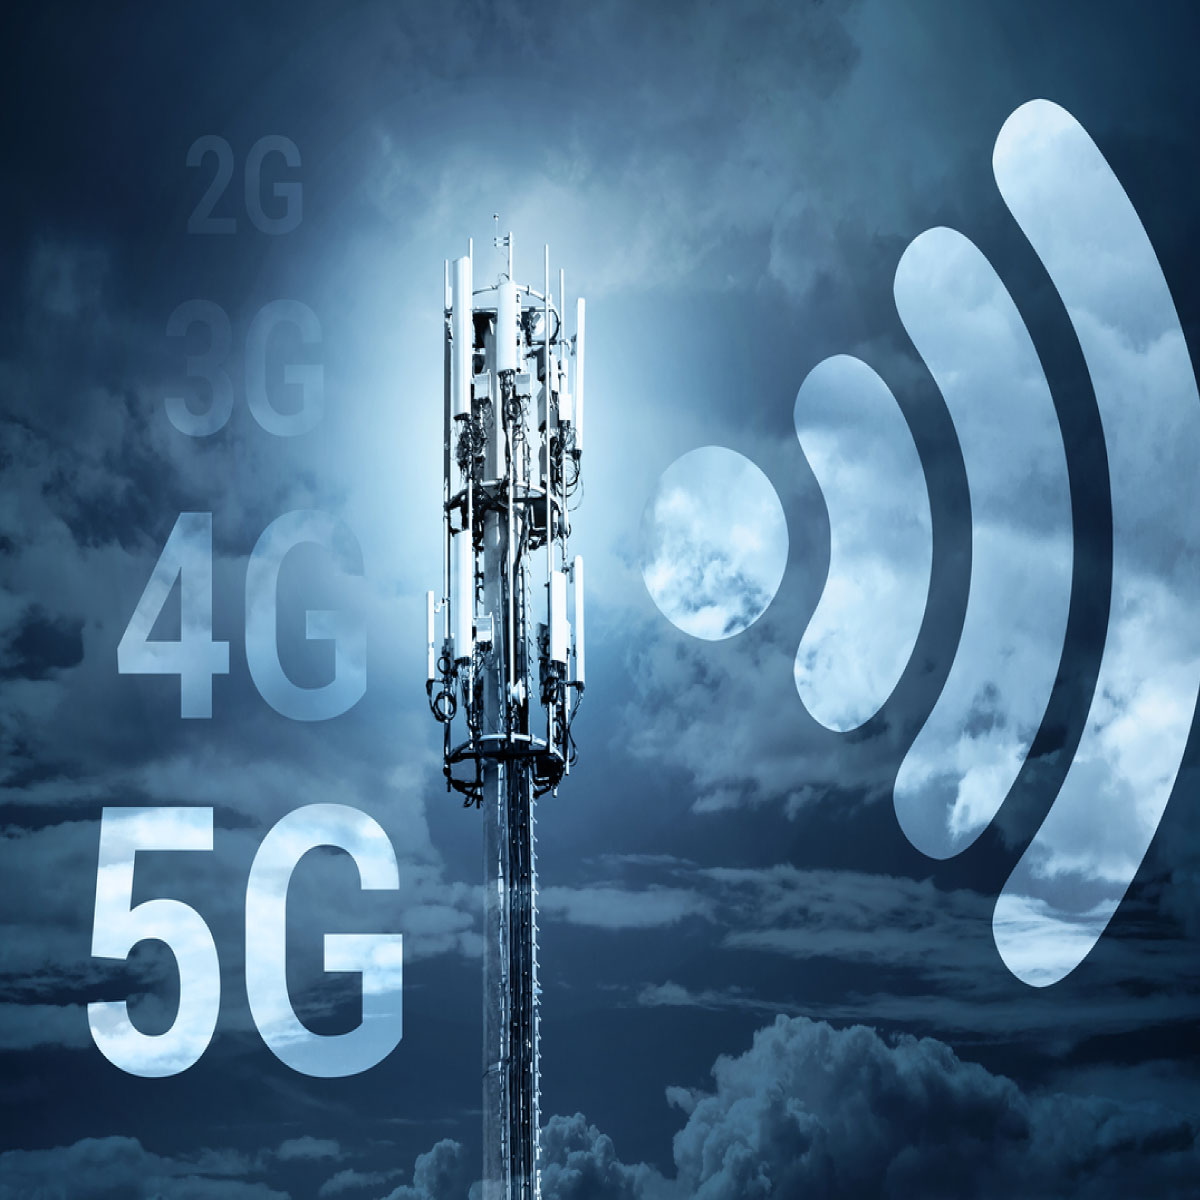 Slotted Microstrip MIMO Antenna for 5G Mobile Applications